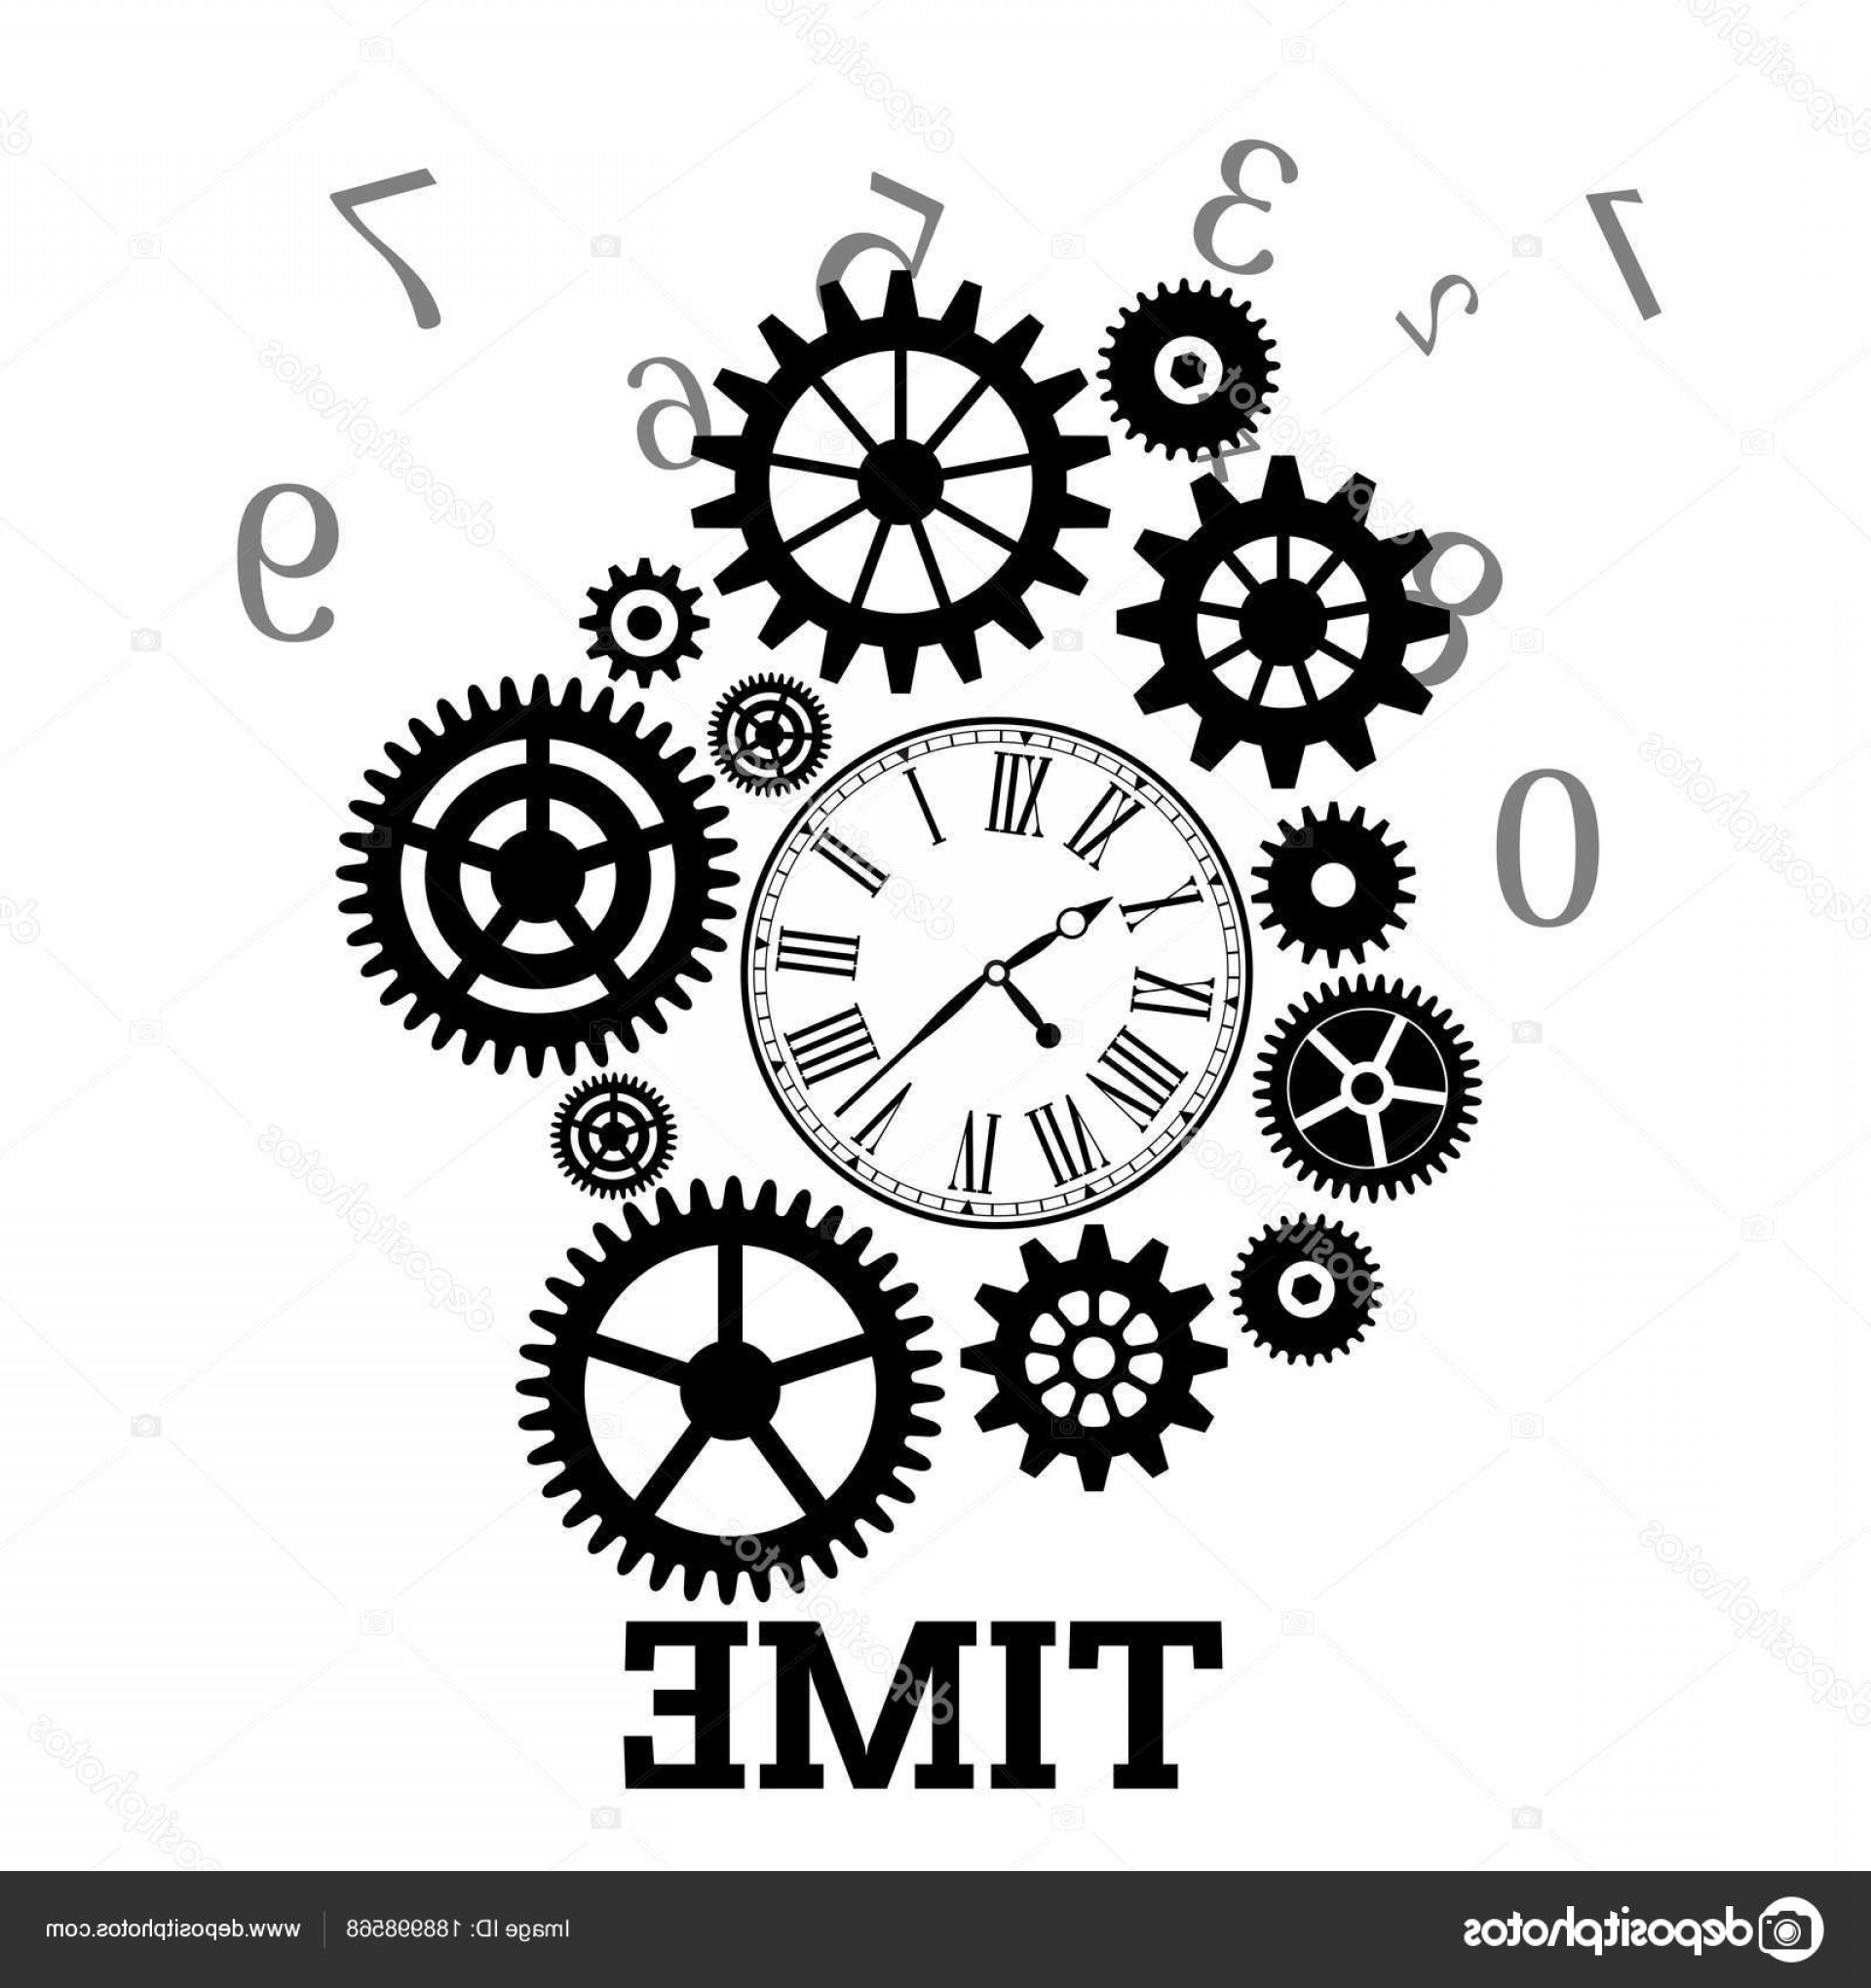 Watch Gears Vector: Stock Illustration Time Clock Gears Cog Background